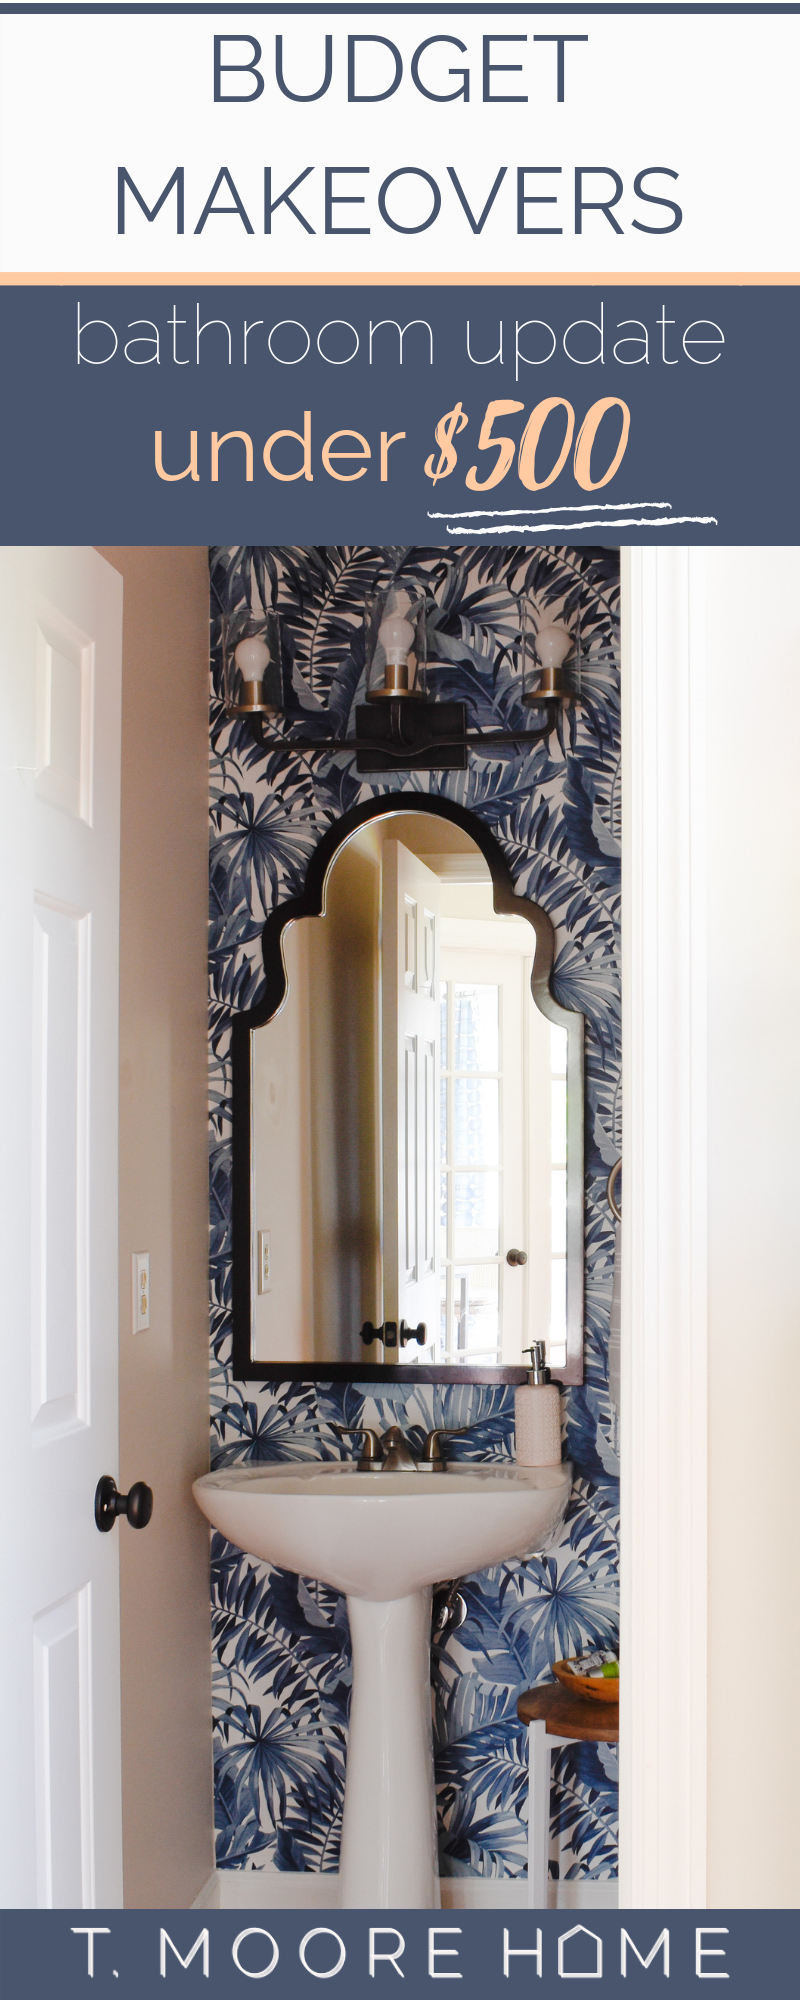 budget bathroom makeover under $500 with wallpaper - powder room wallpaper just makes me happy every time